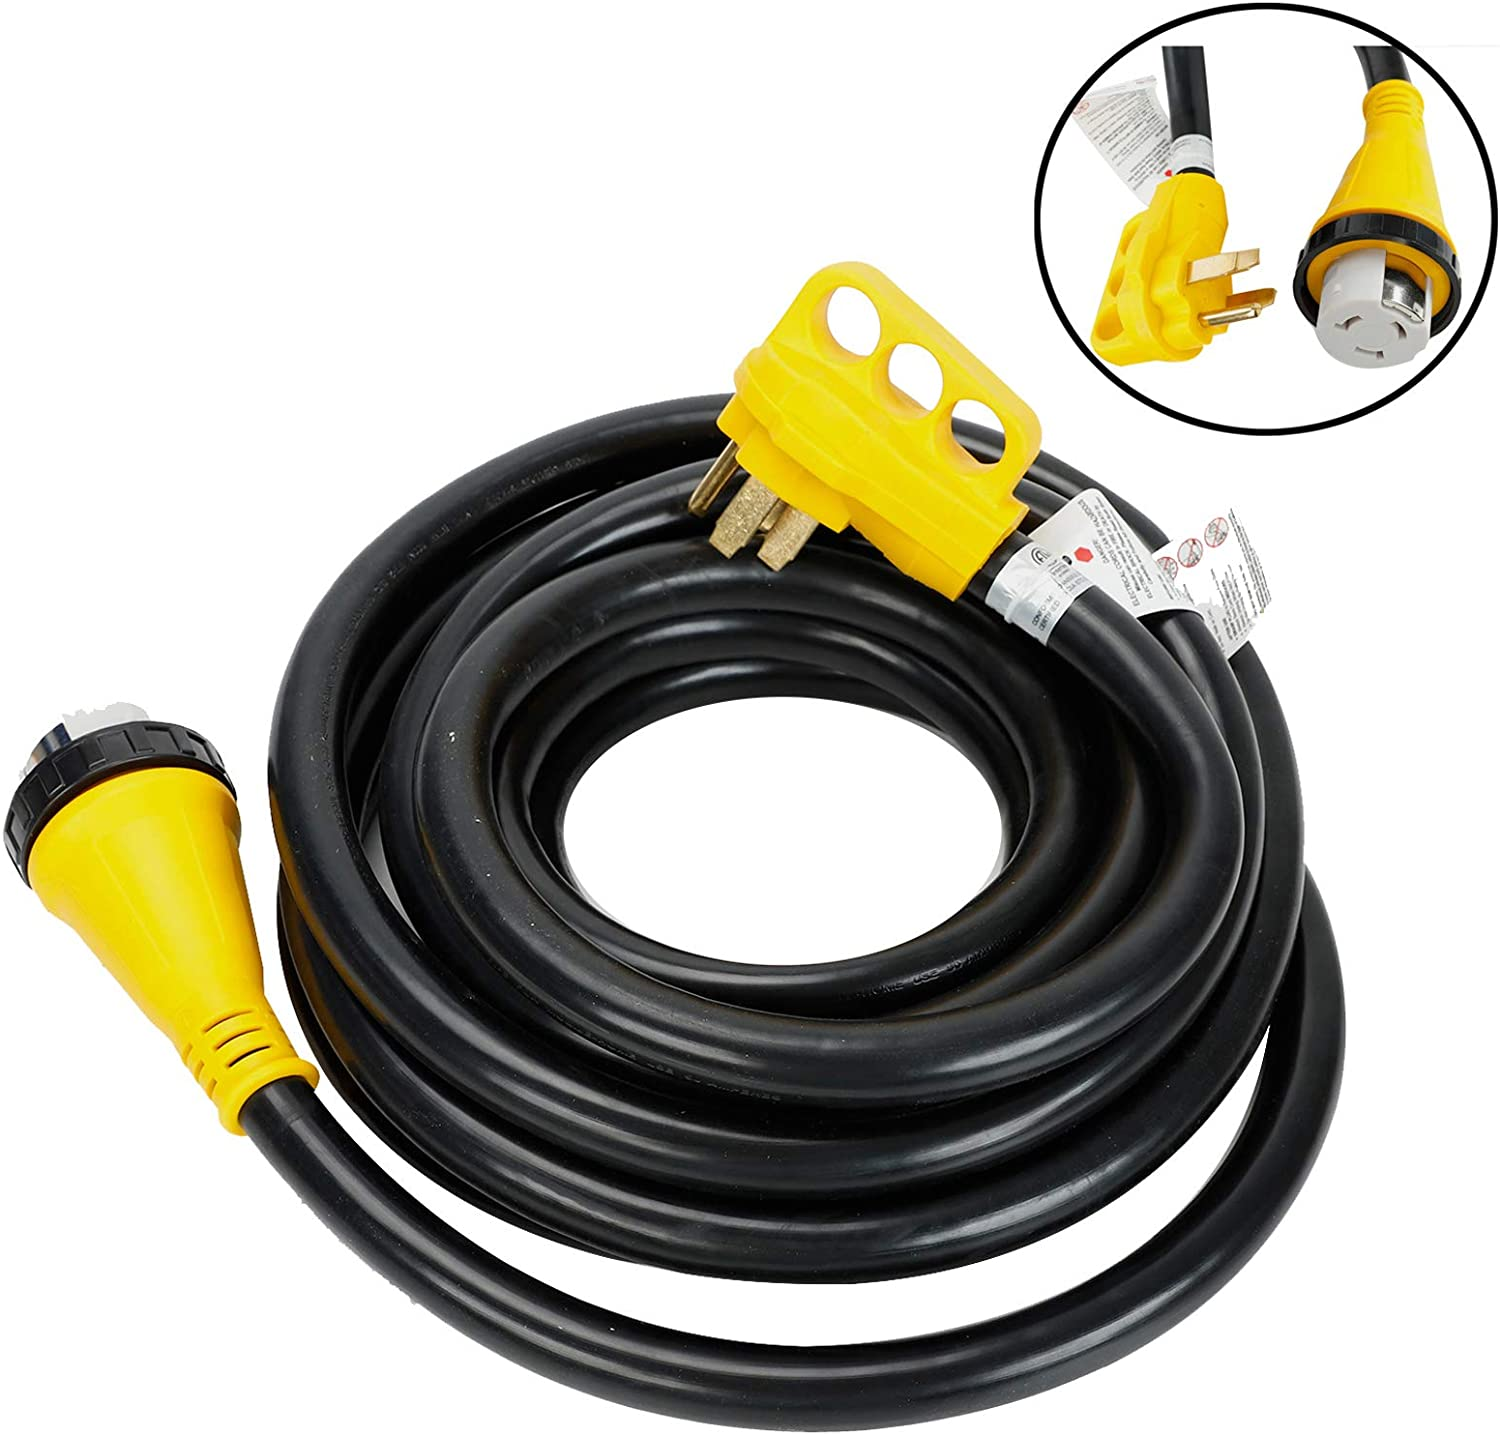 RV Power Cord 15ft 30 amp RV Extension Cable Rain Proof Twist Lock Connector